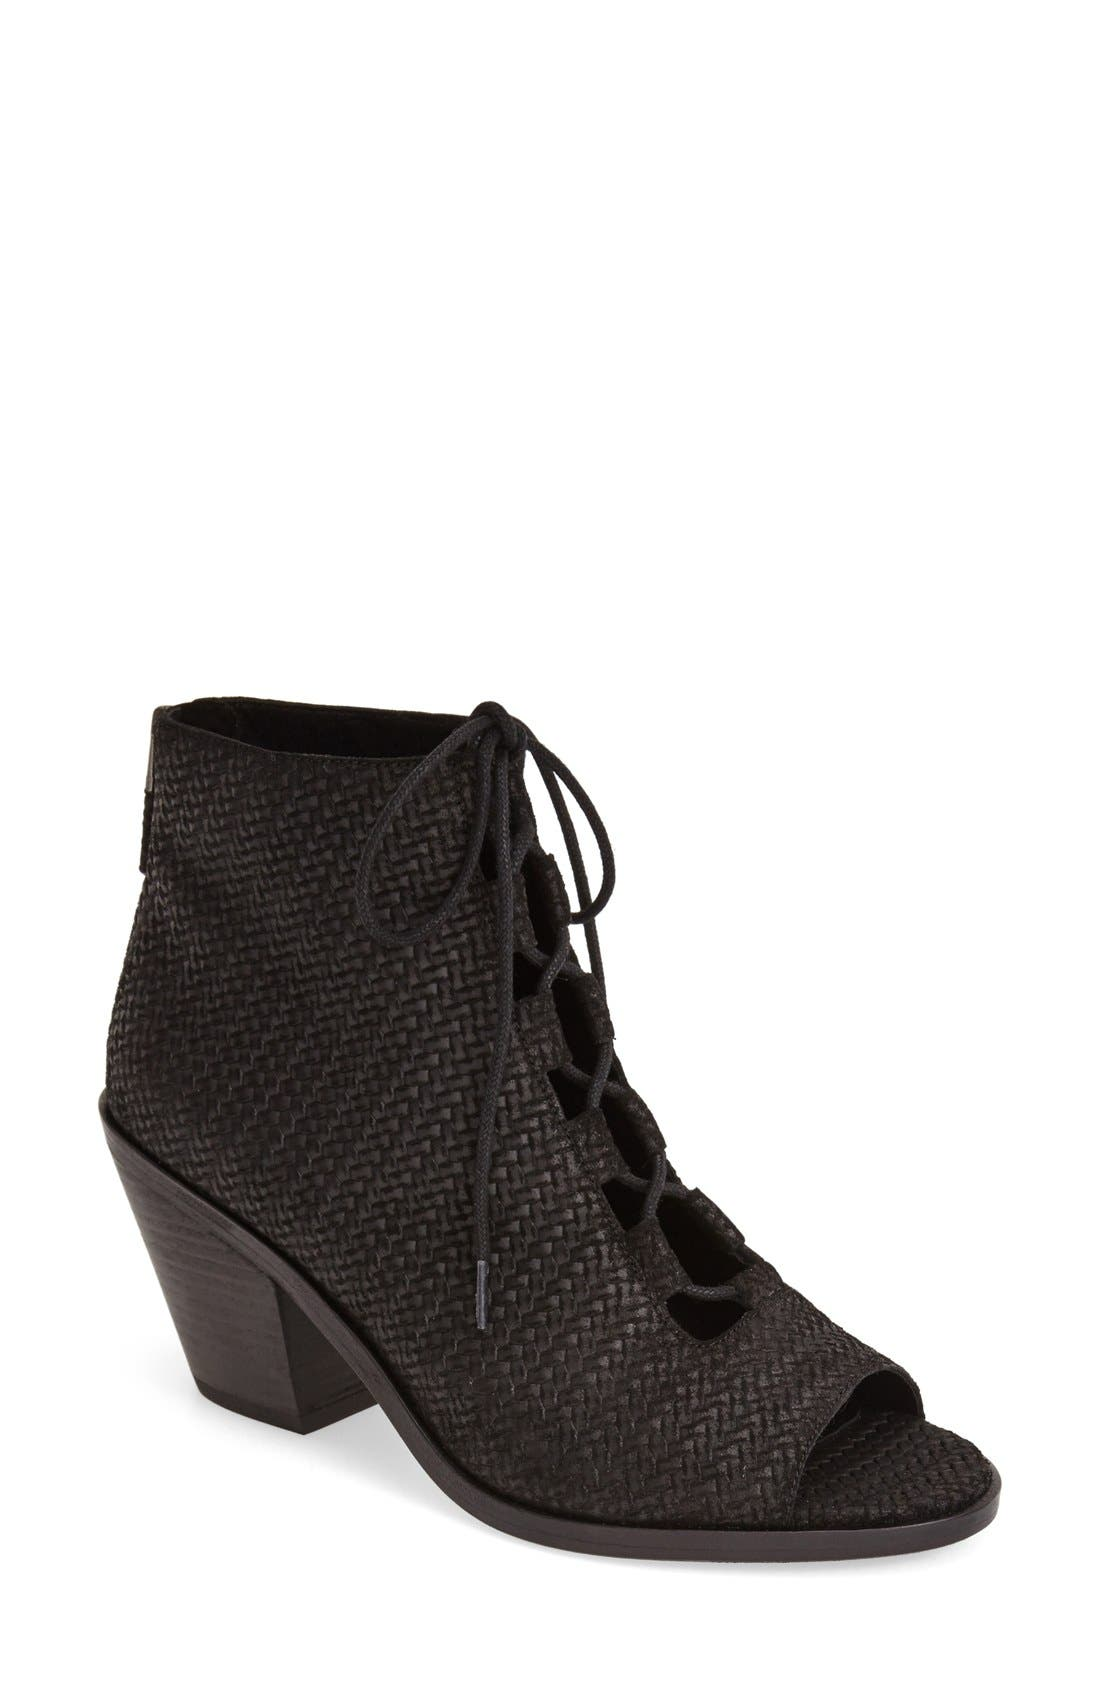 'Slew' Lace Up Bootie,                             Main thumbnail 1, color,                             001